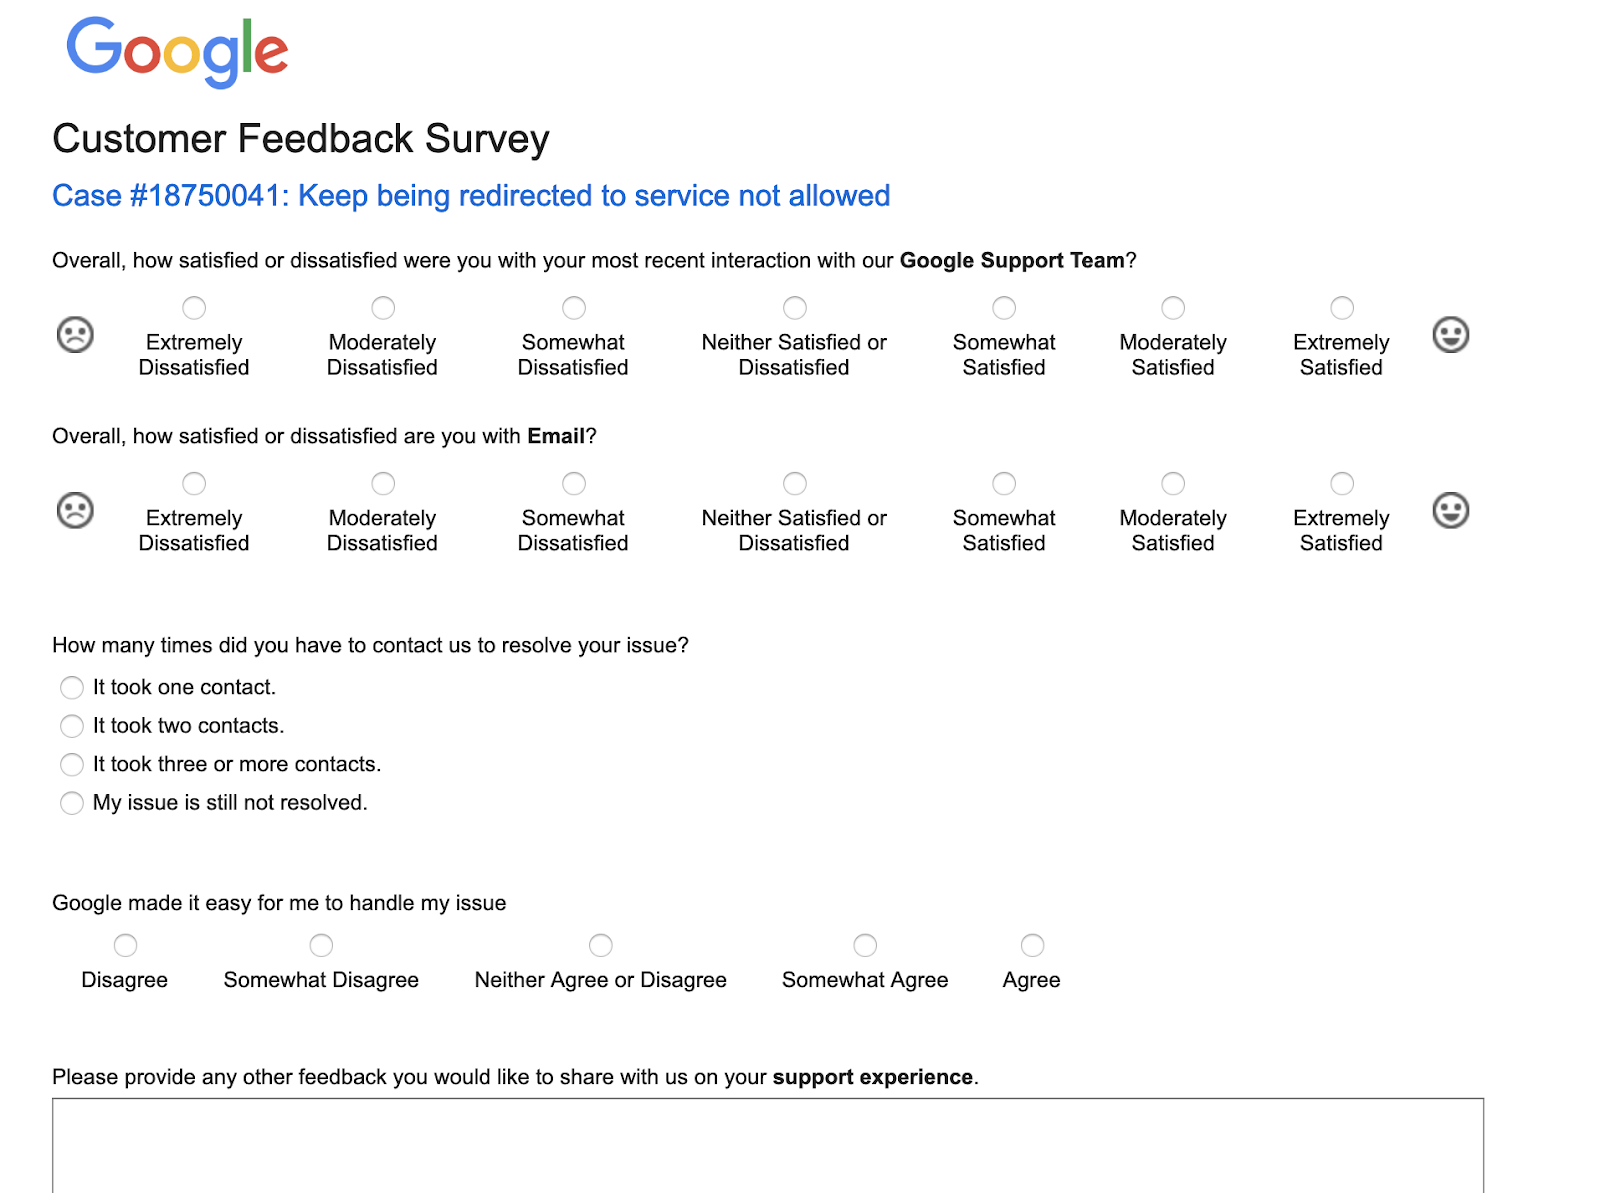 google customer feedback survey